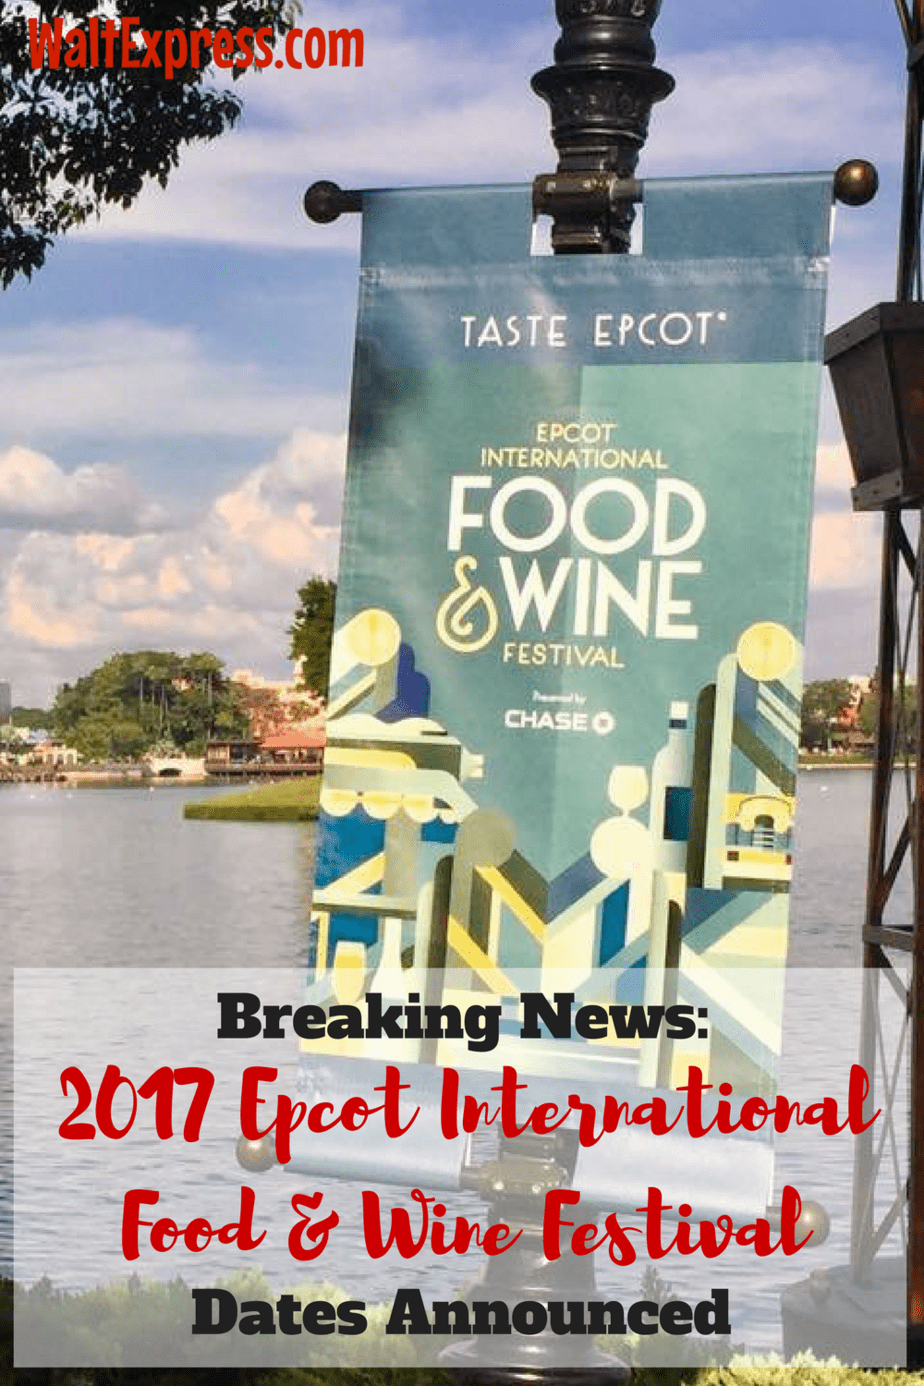 Breaking News 2017 Epcot International Food Wine Festival Dates